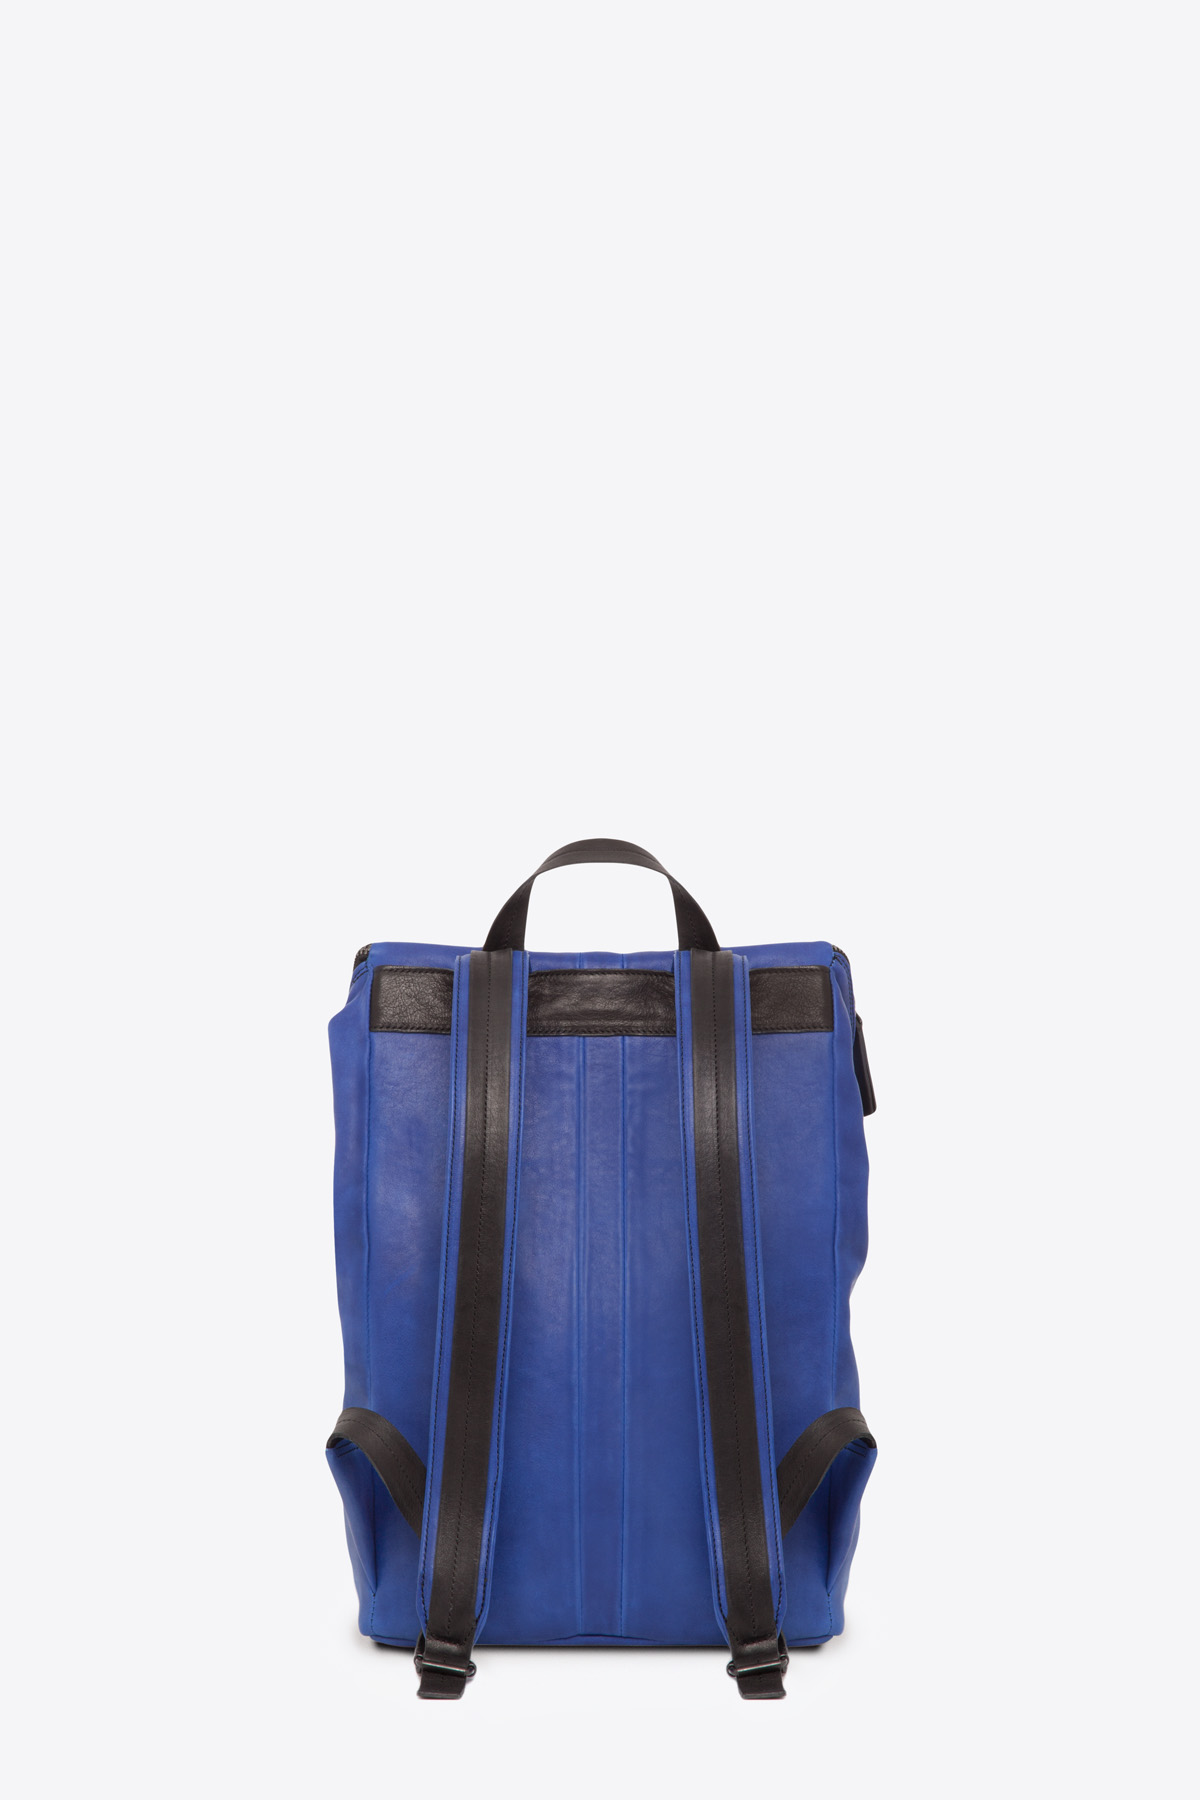 dclr011-backpack-a20-royalblue-back